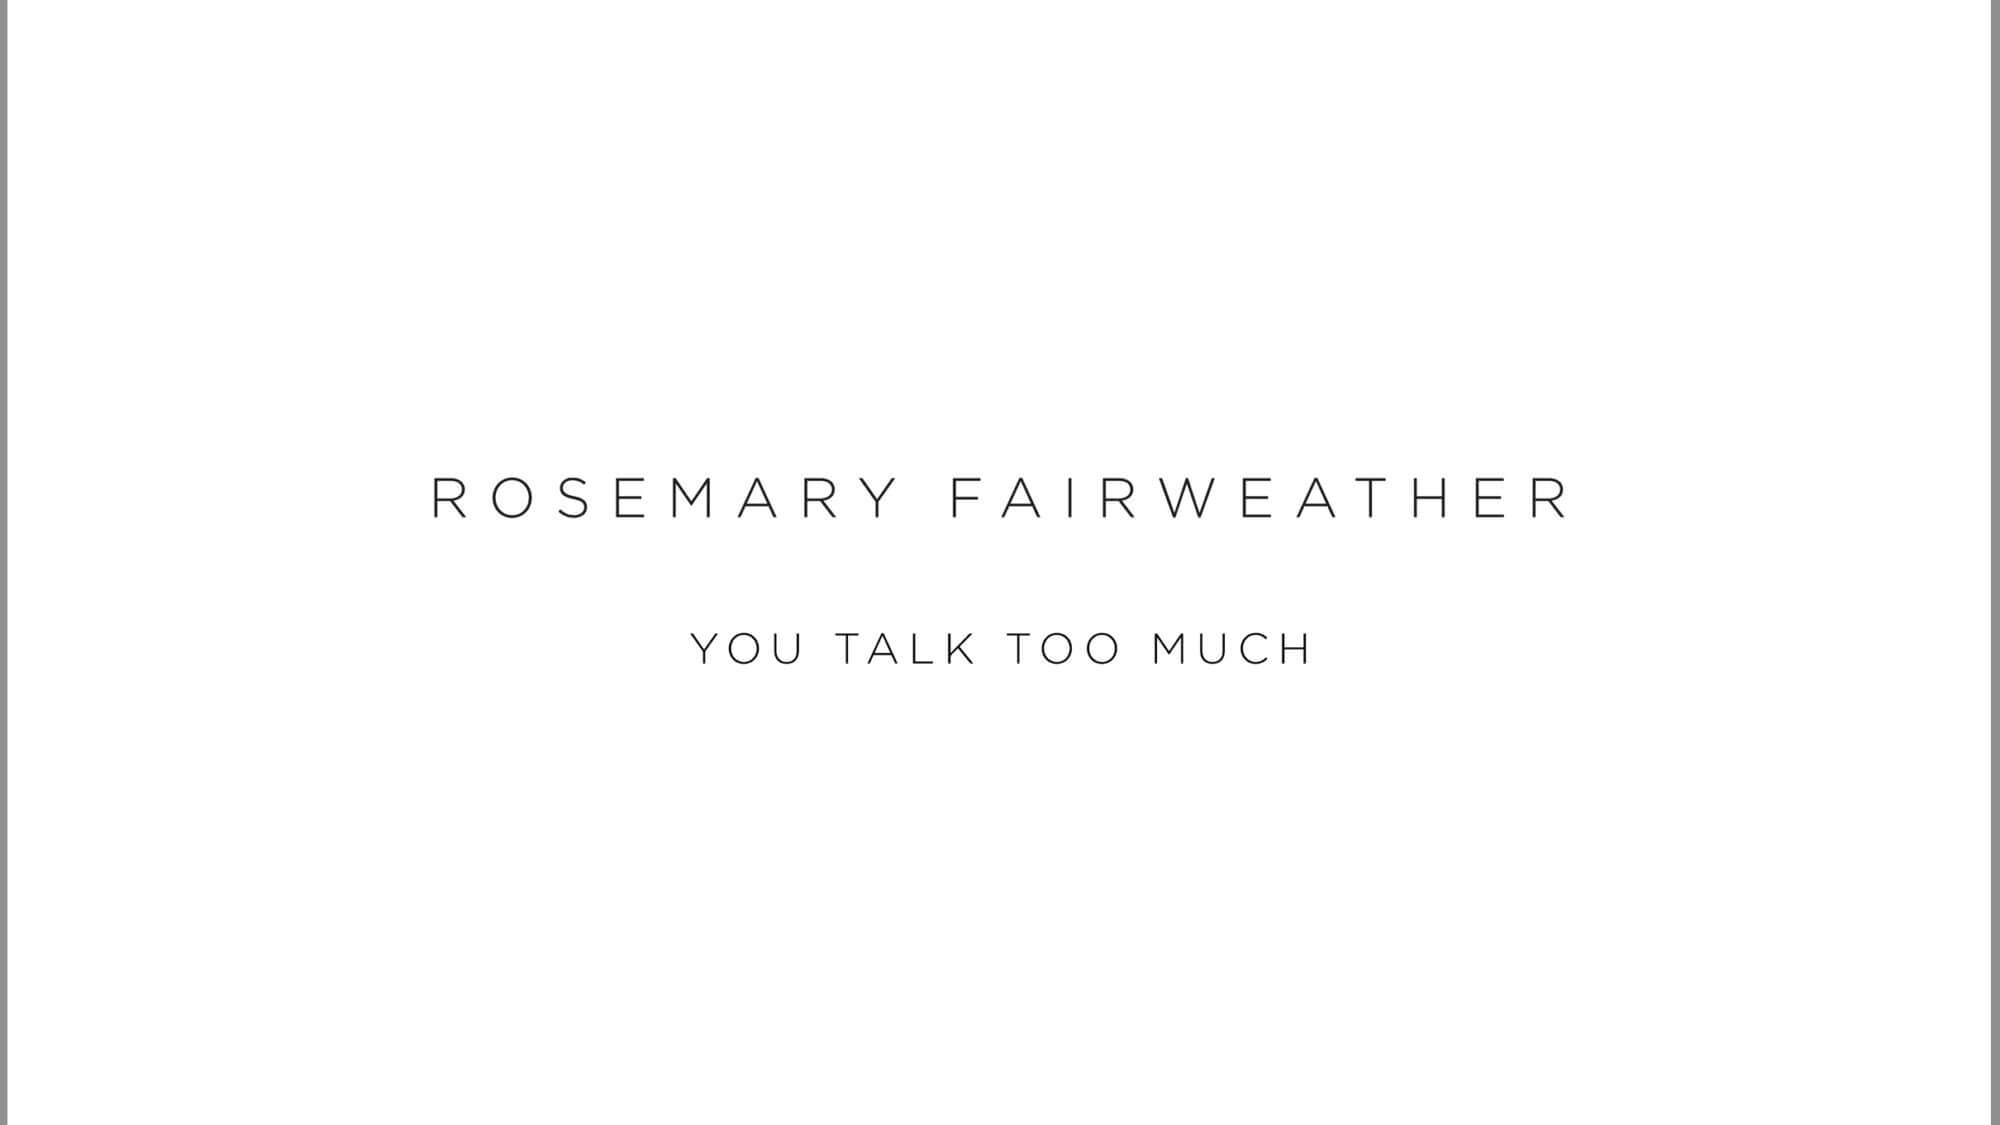 rosemary fairweather you talk too much 1